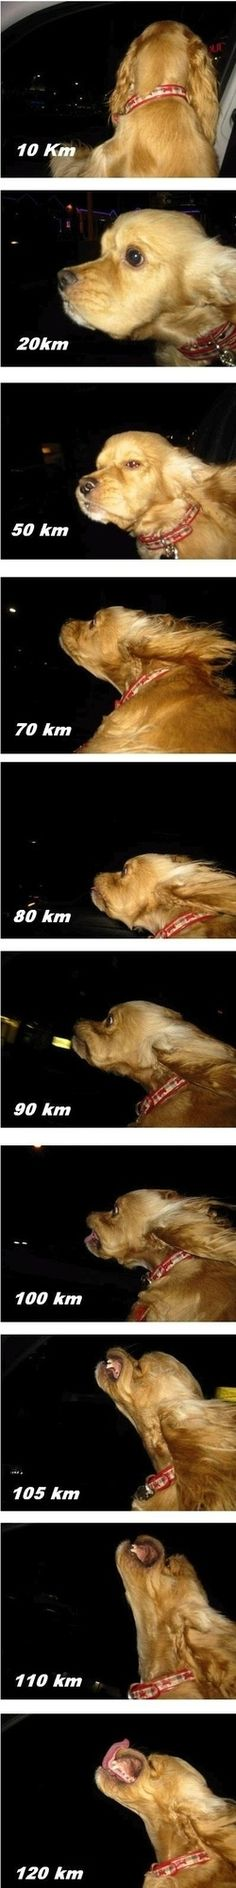 A progression of what wind speed looks like on a dog's face hanging out a car window... this is my kind of experiment